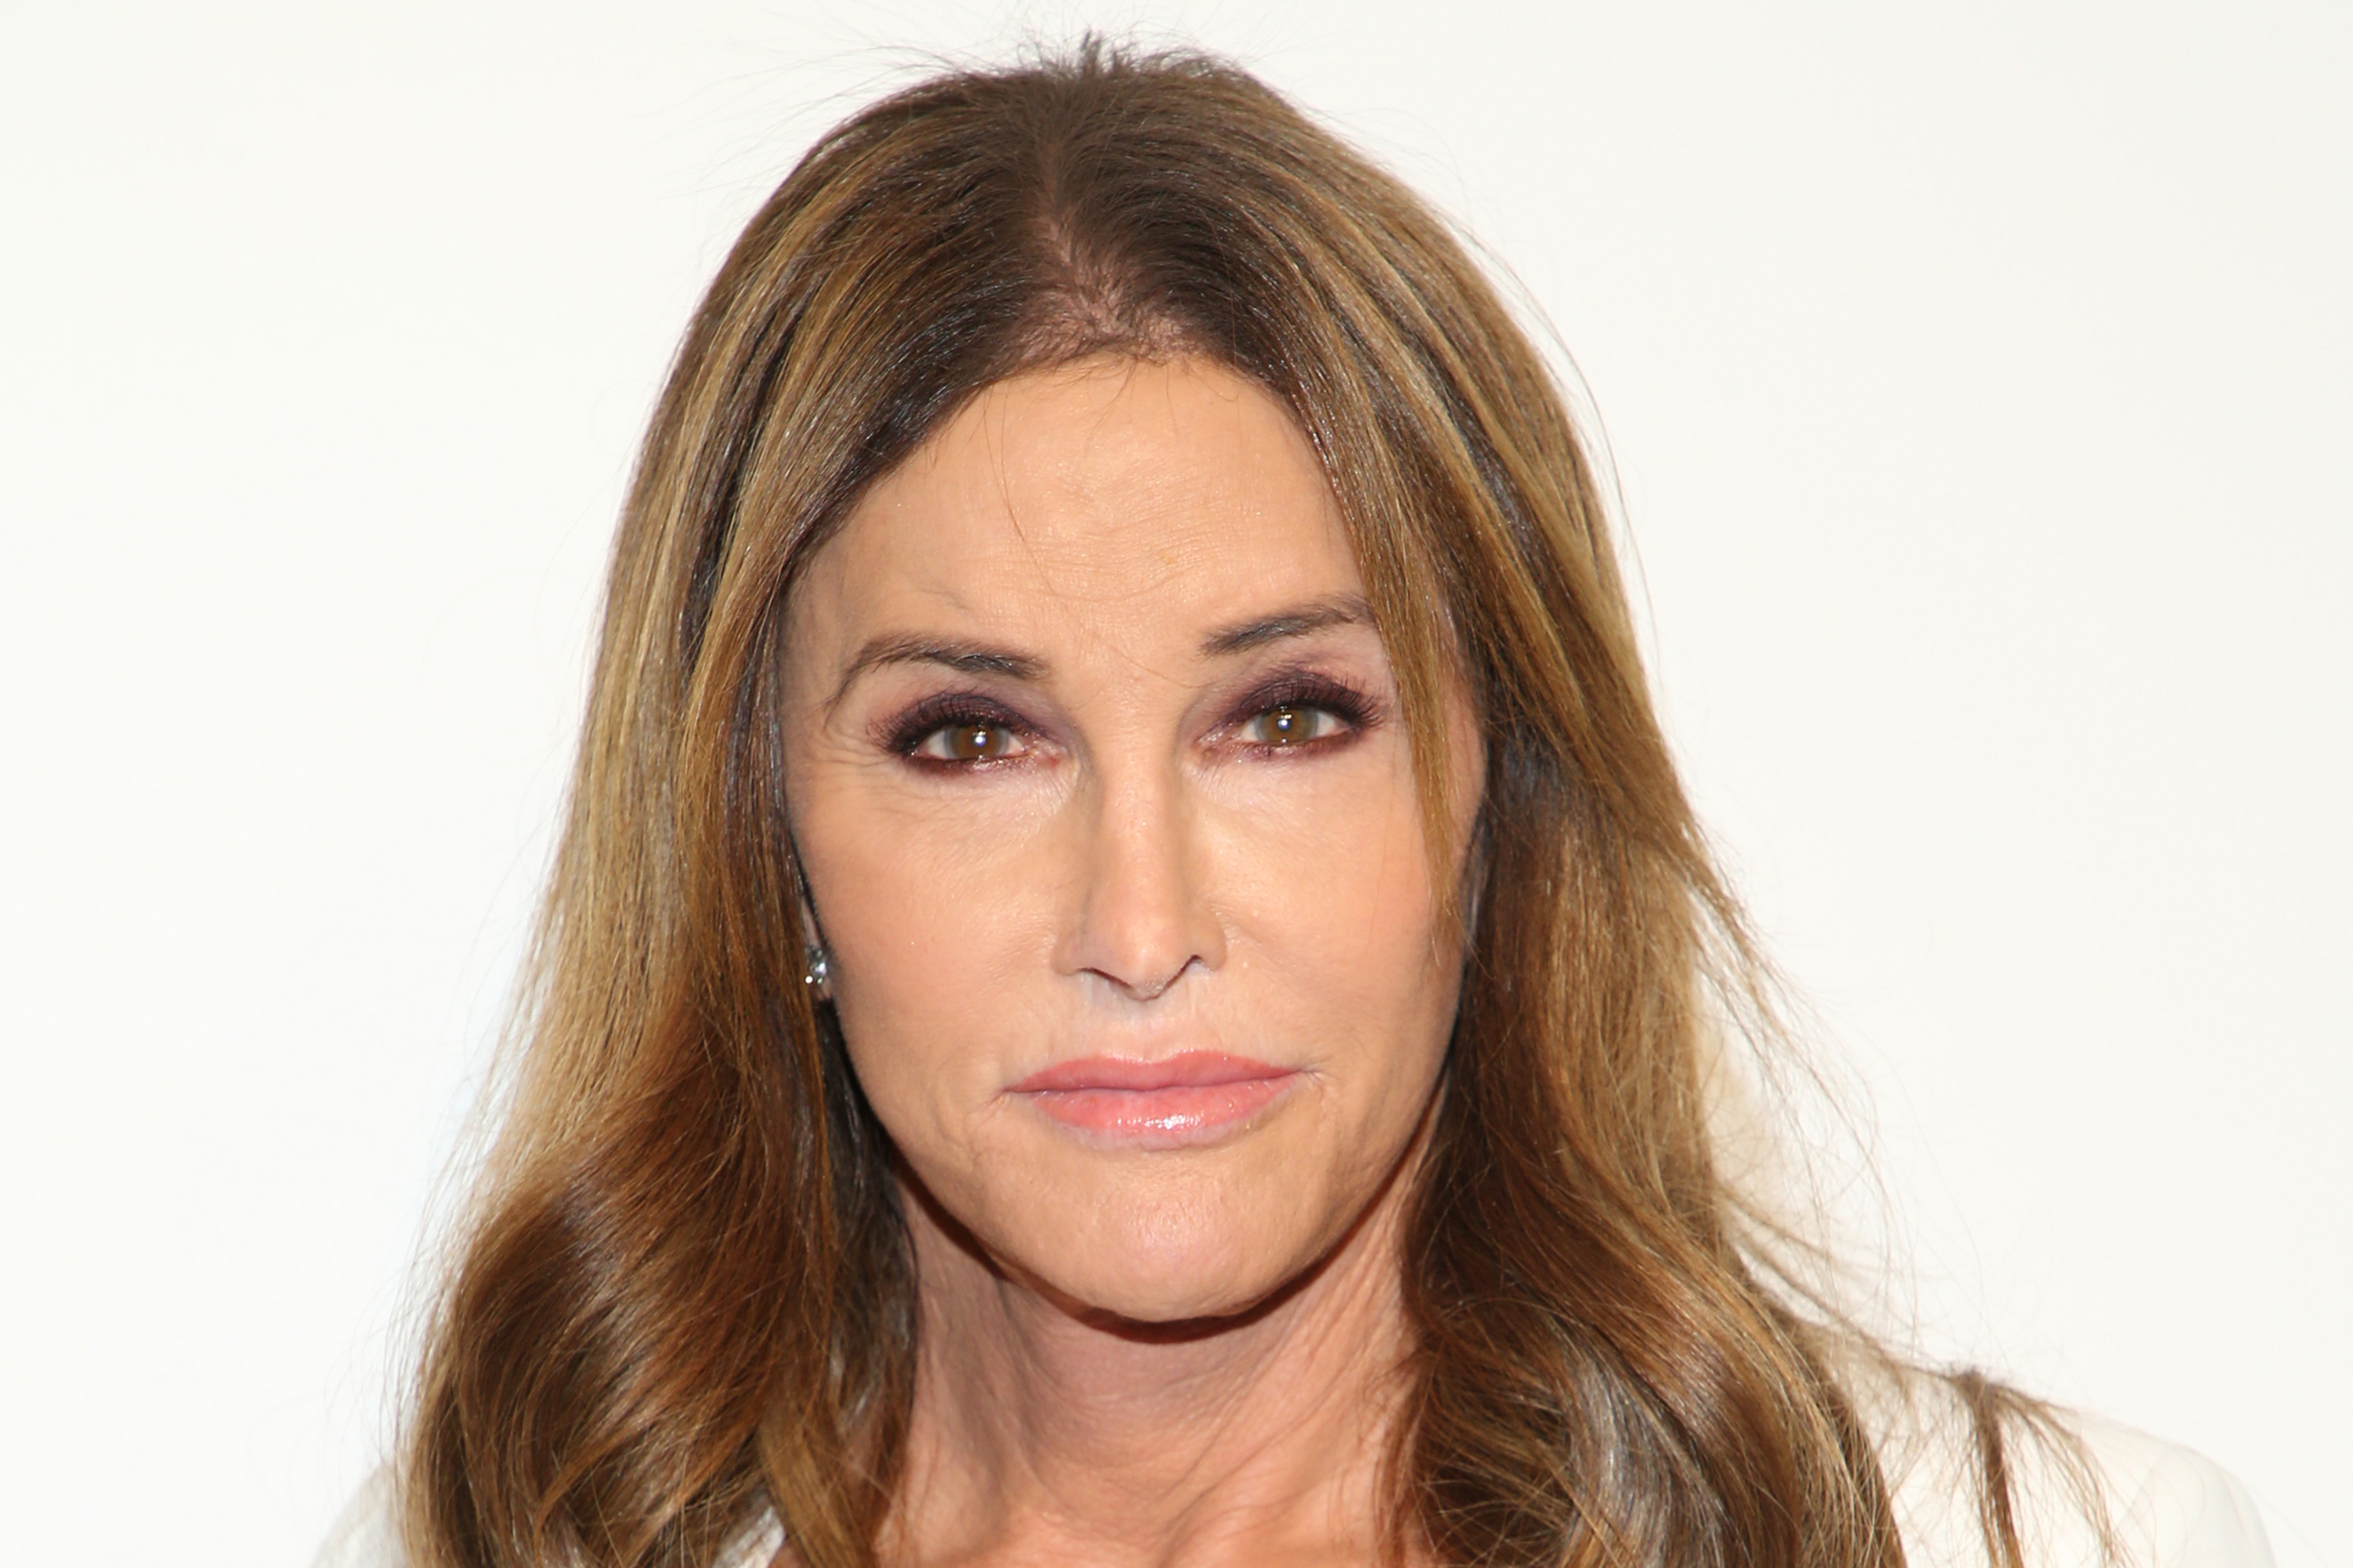 Caitlyn Jenner sets acting return in Dick Van Patten sitcom